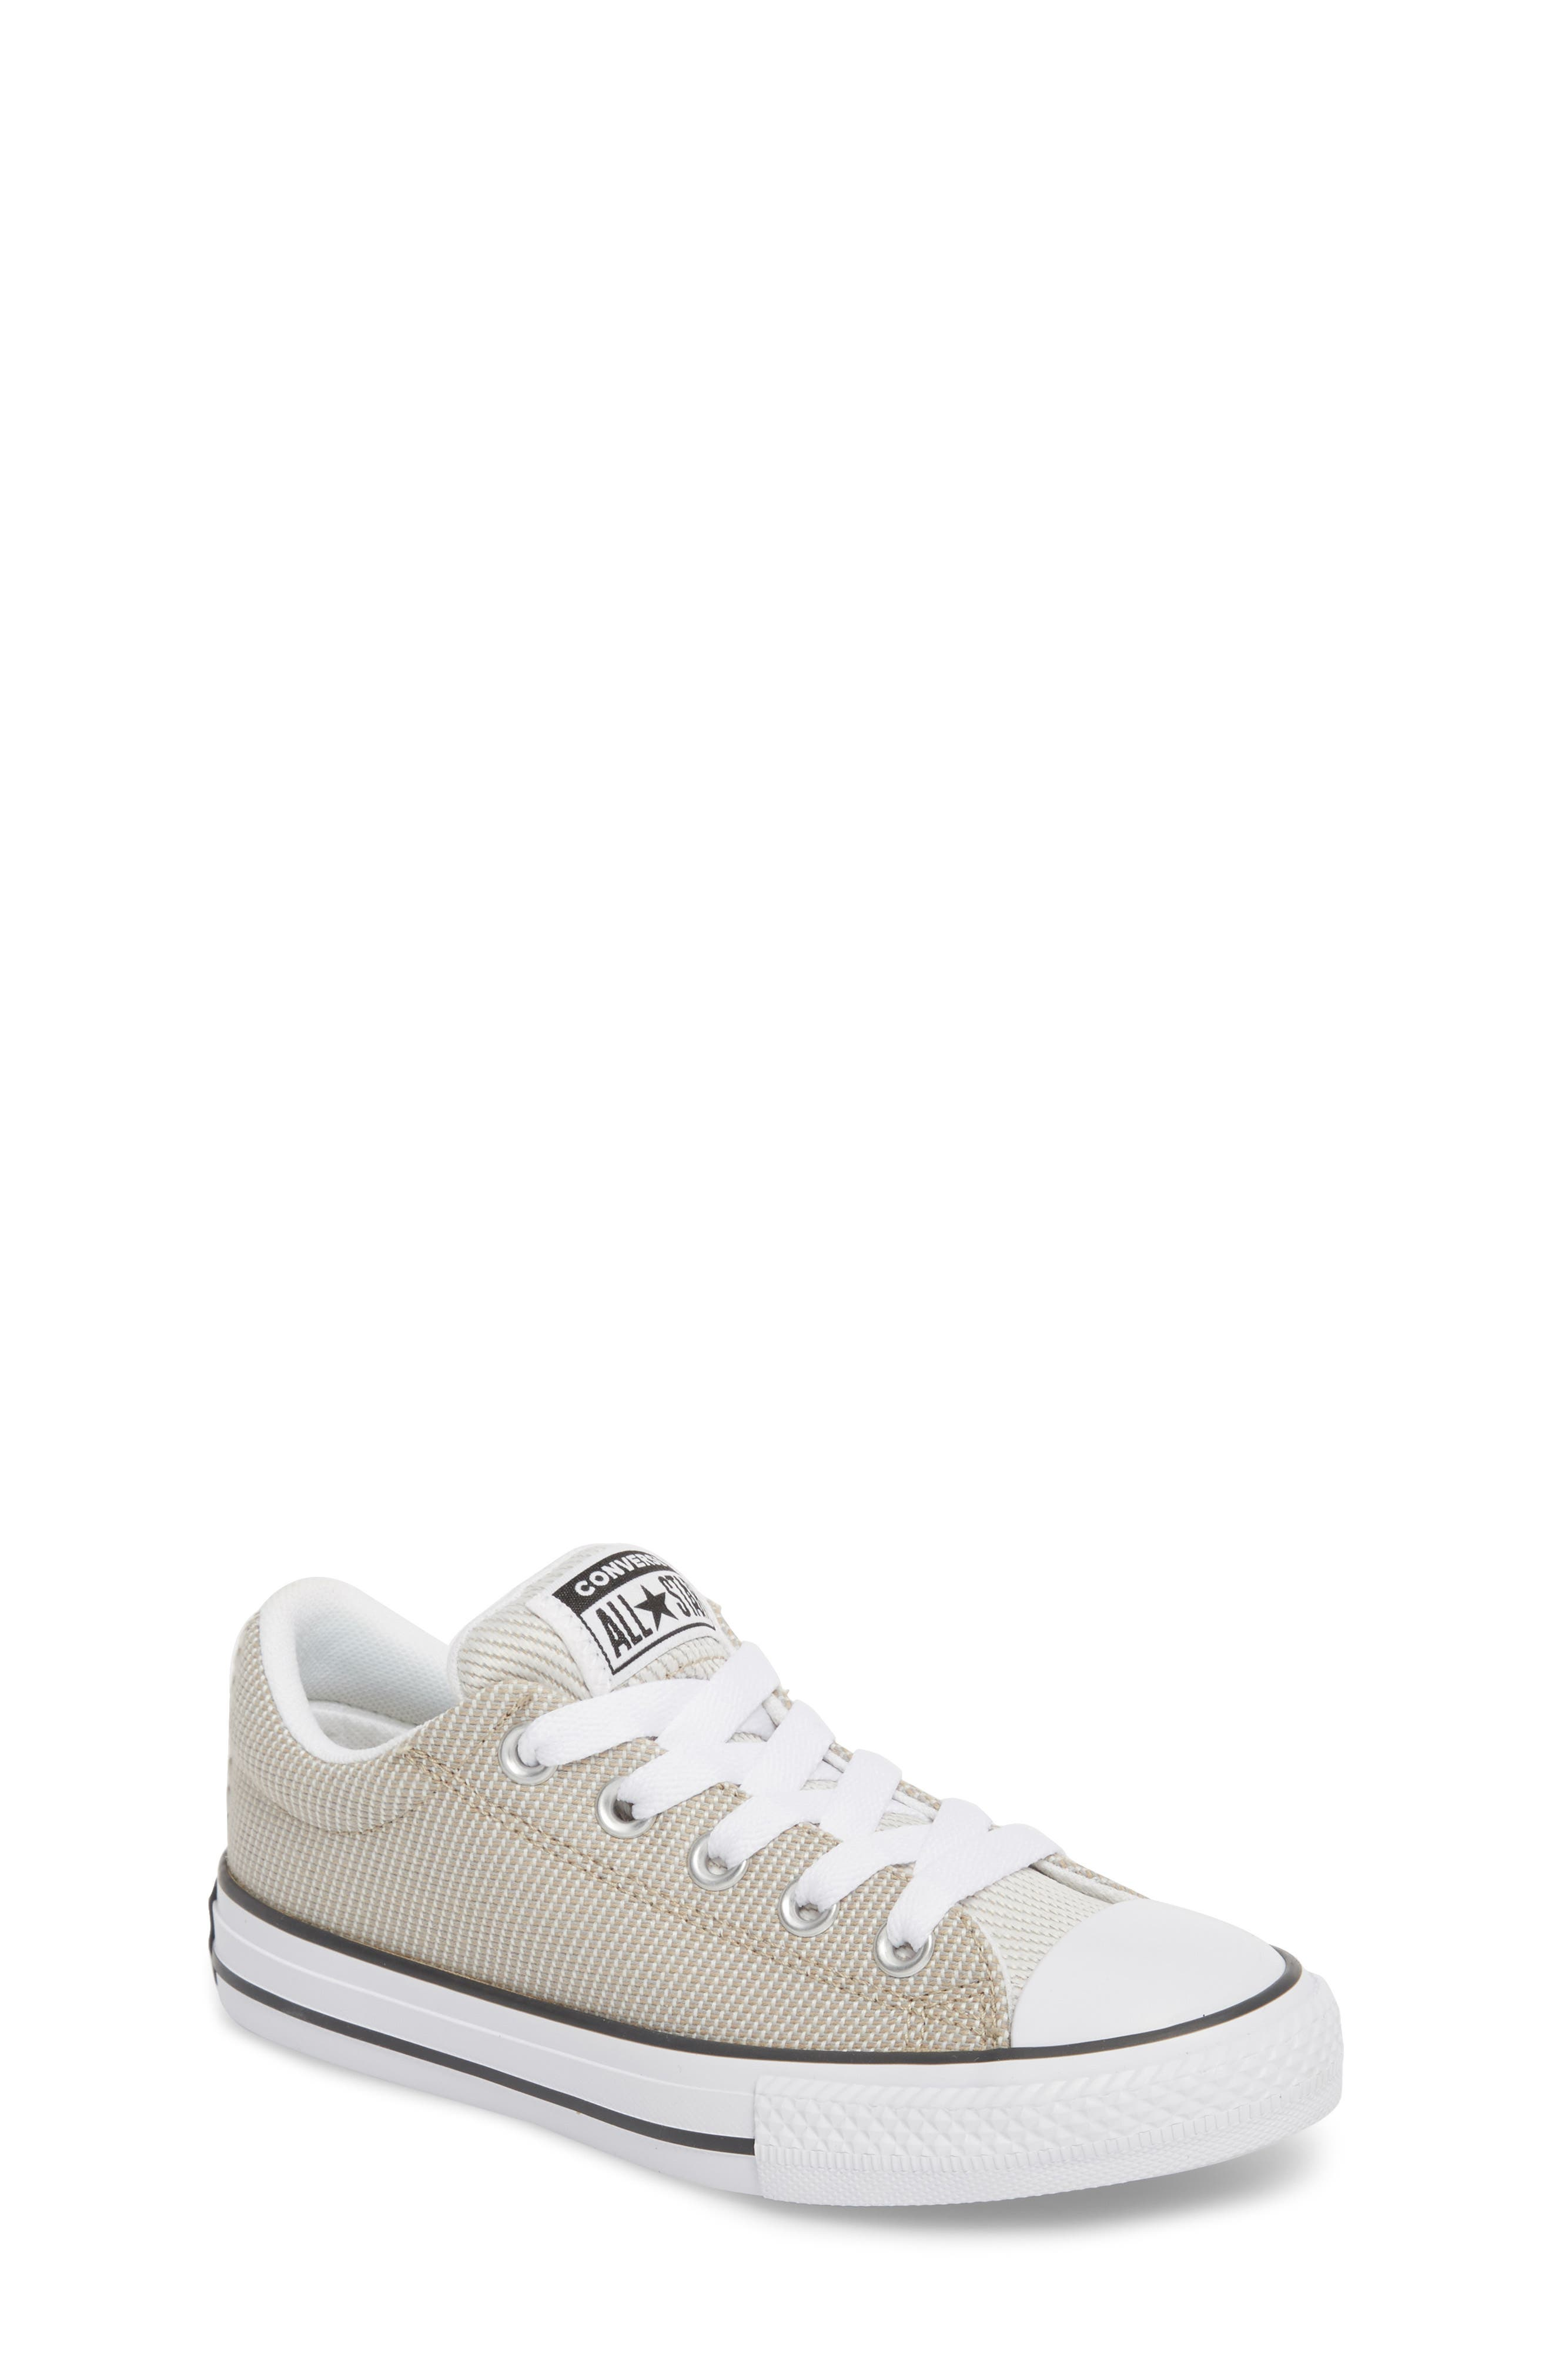 Chuck Taylor<sup>®</sup> All Star<sup>®</sup> Woven Street Sneaker,                         Main,                         color, VINTAGE KHAKI